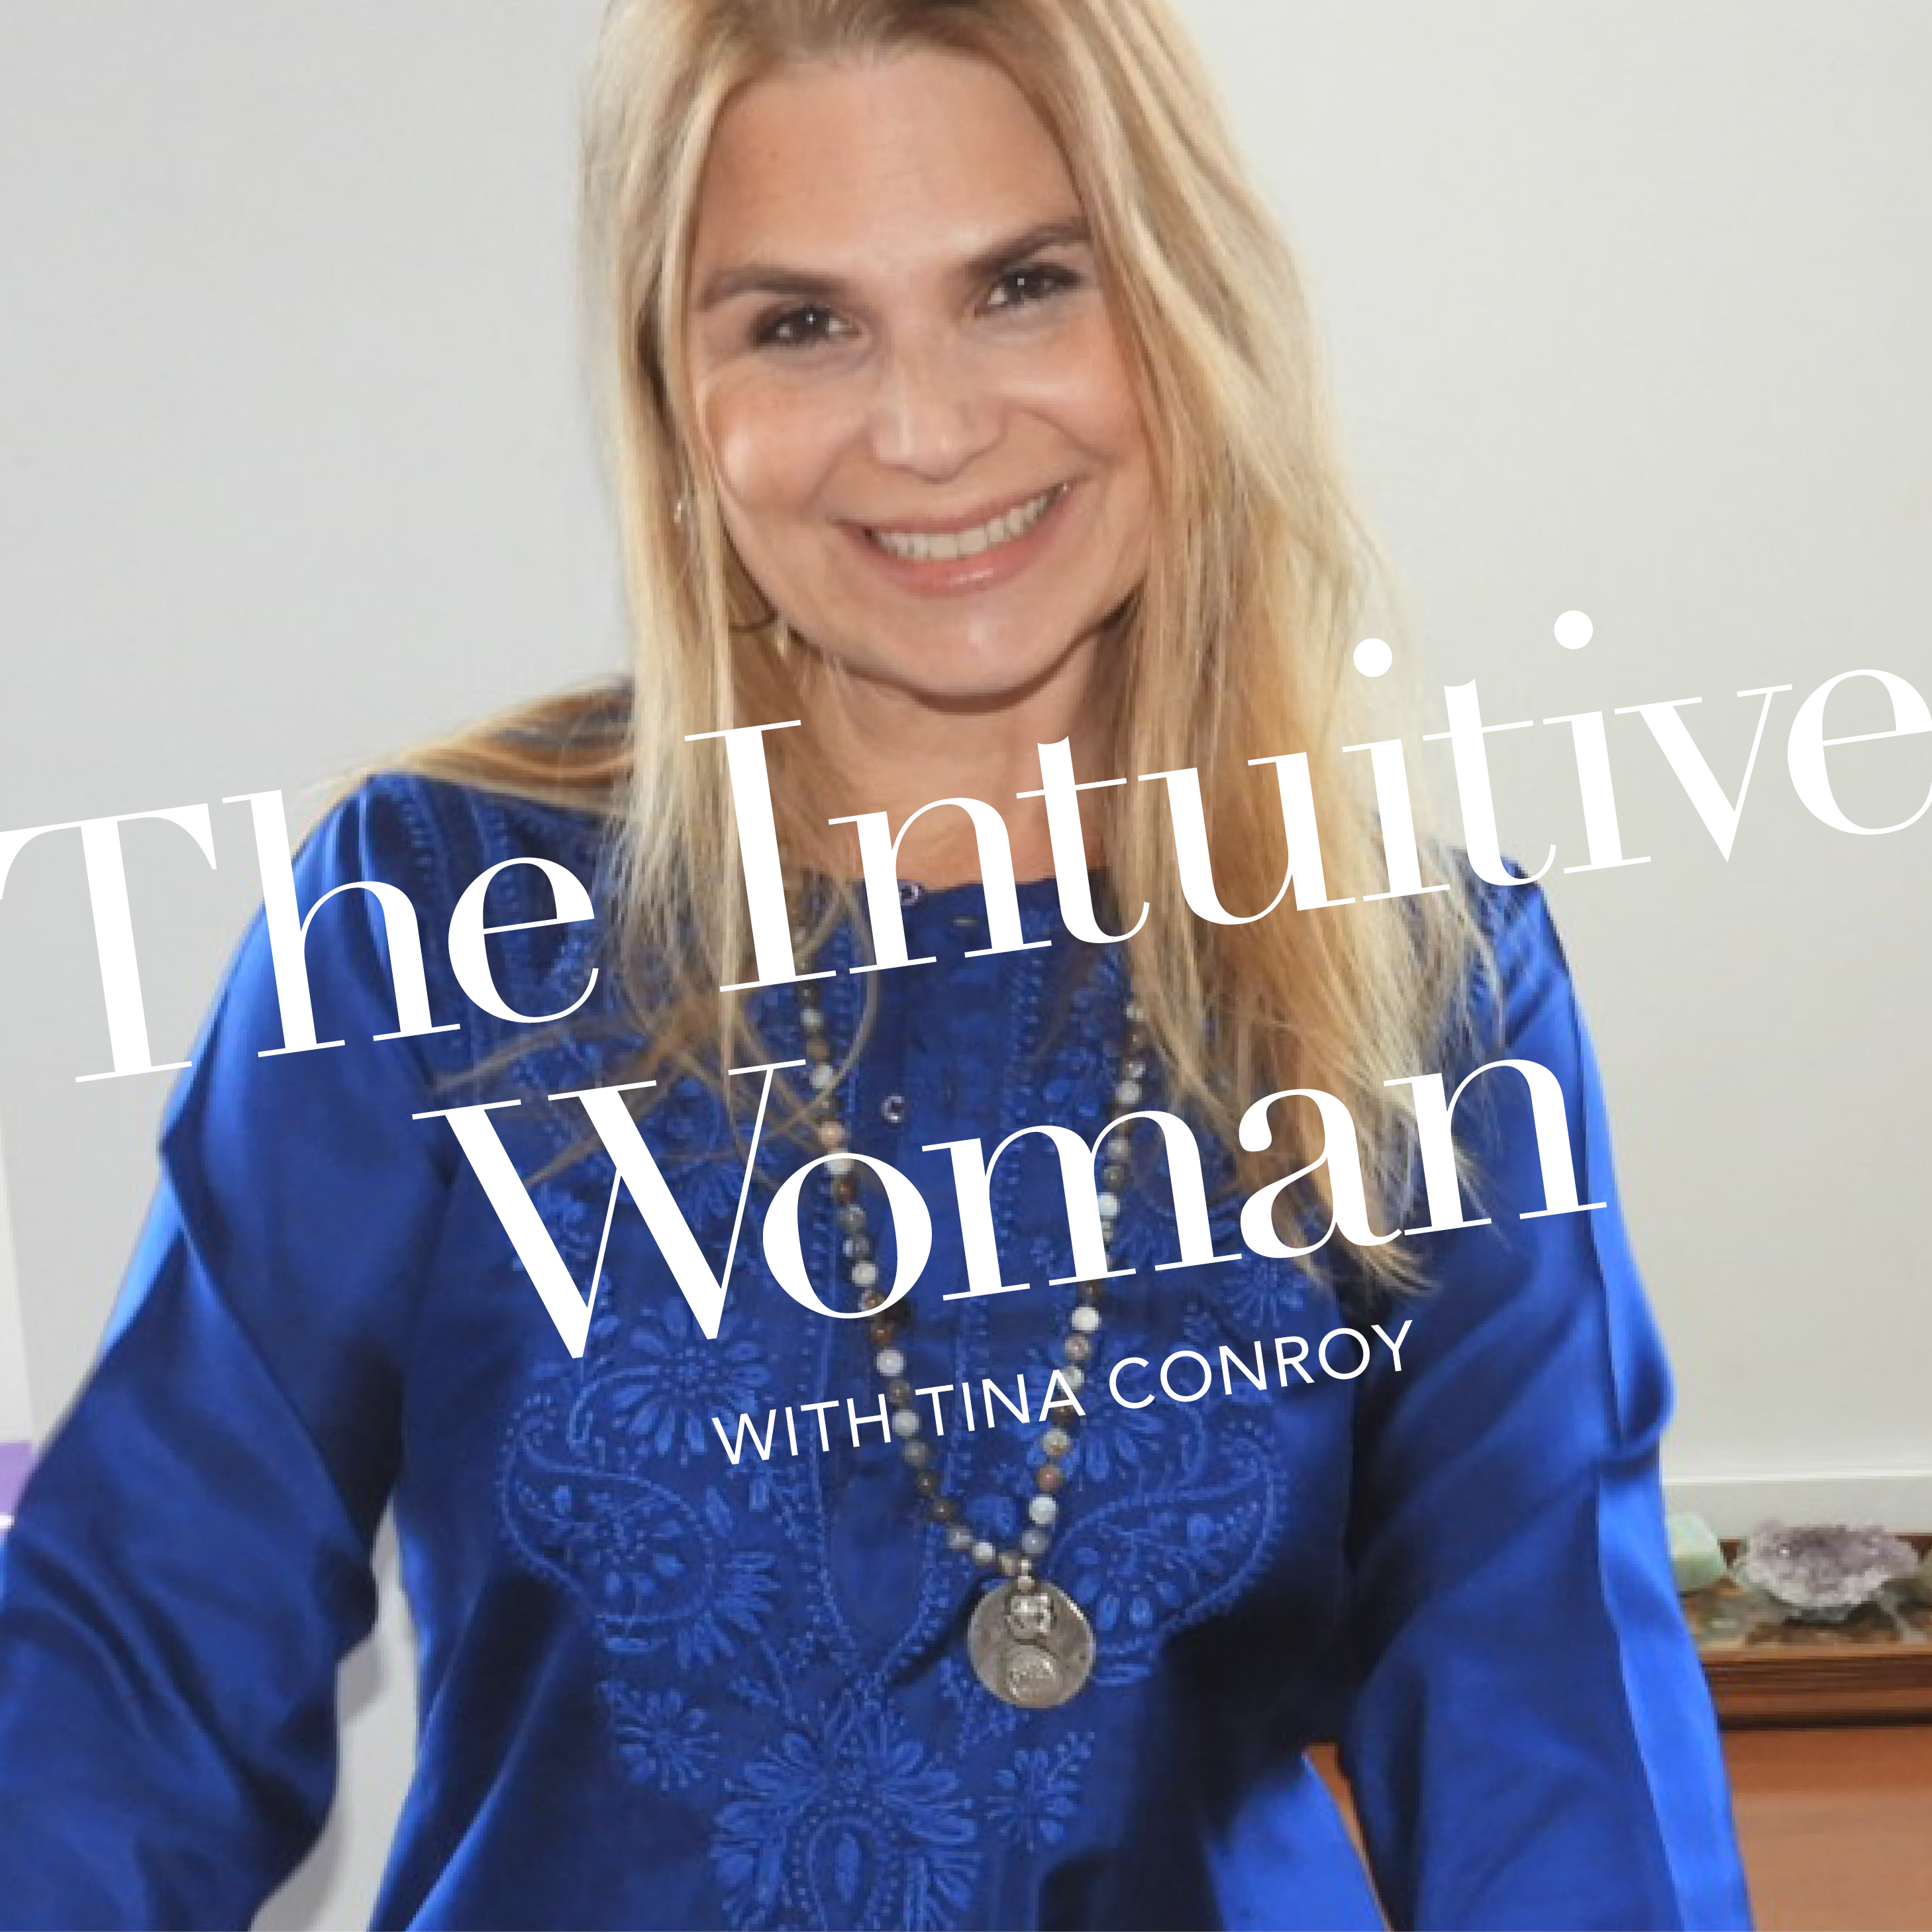 Intuitive Woman Podcast